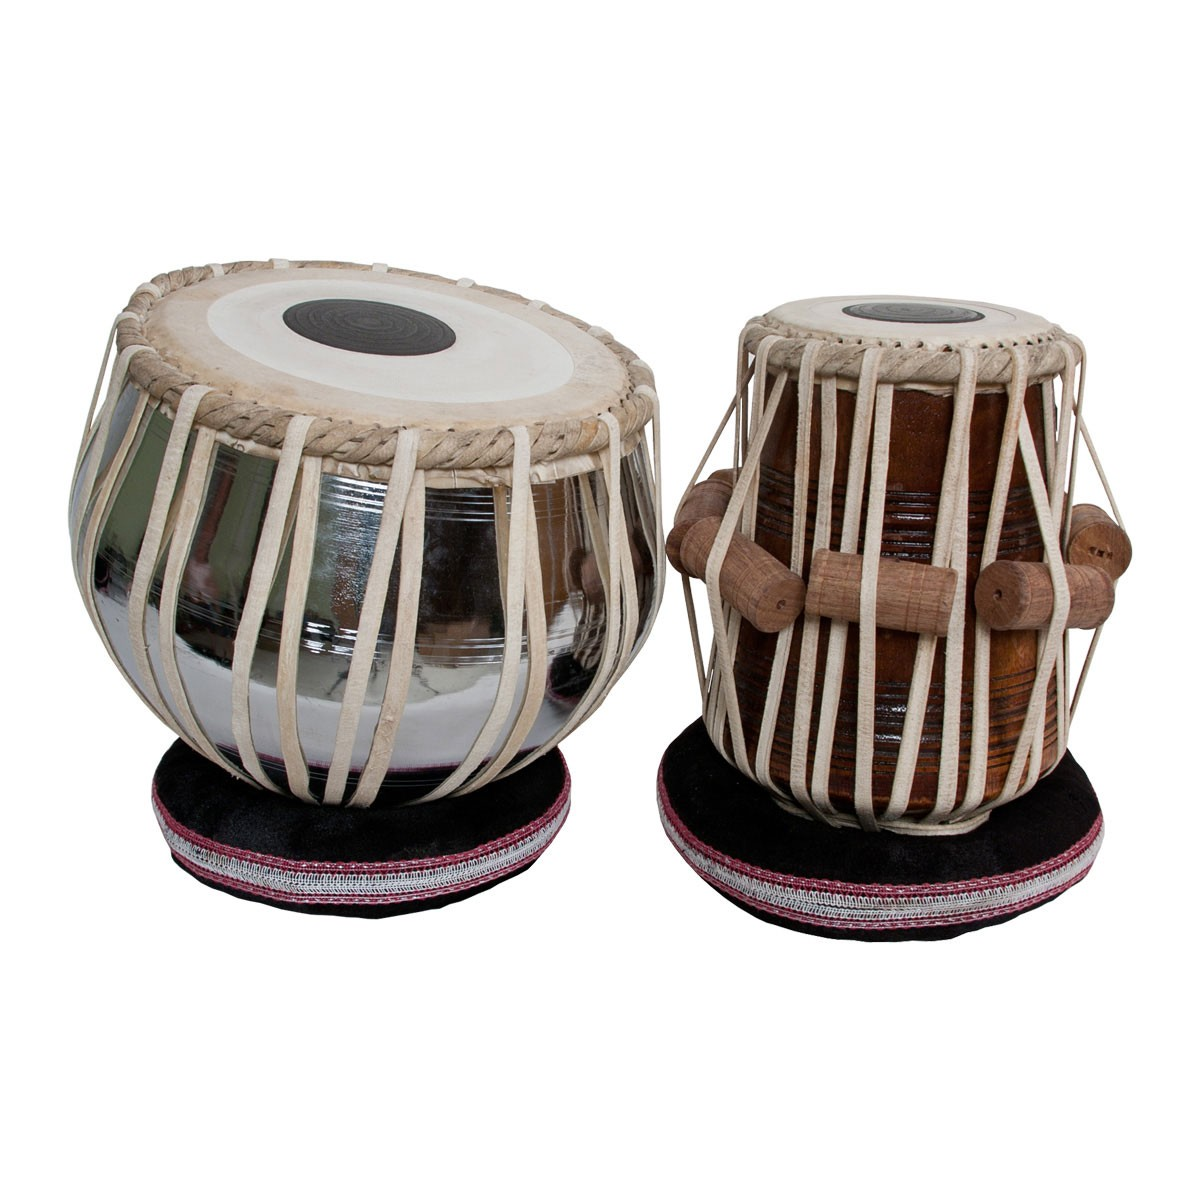 banjira Pro Tabla Set Nickel Plated Brass Bayan and 5.50' Dayan *Blemished